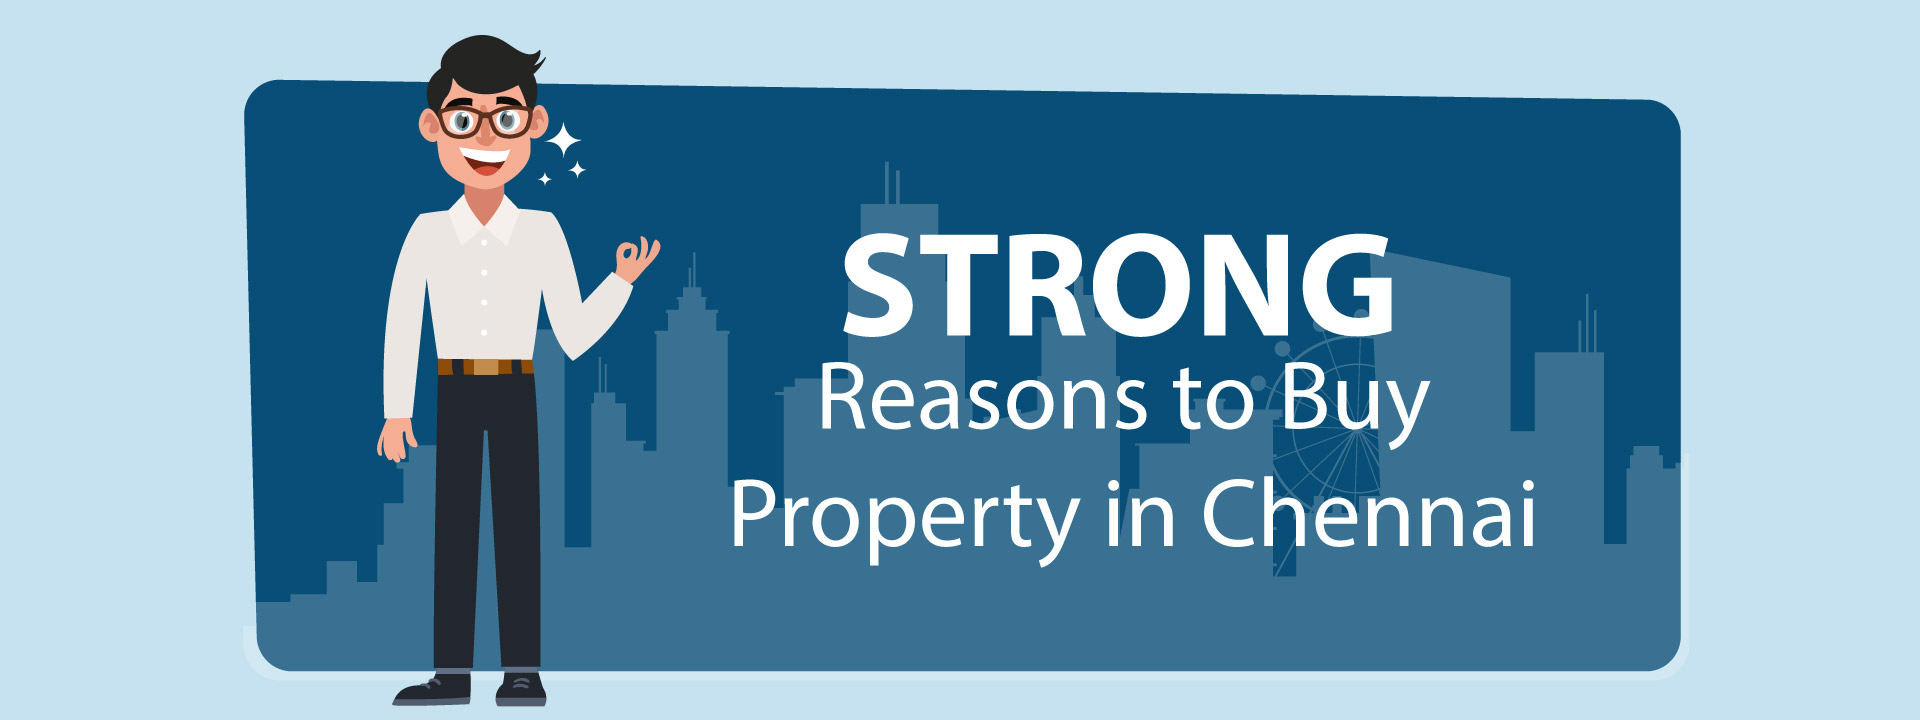 Strong Reasons to Buy Property in Chennai